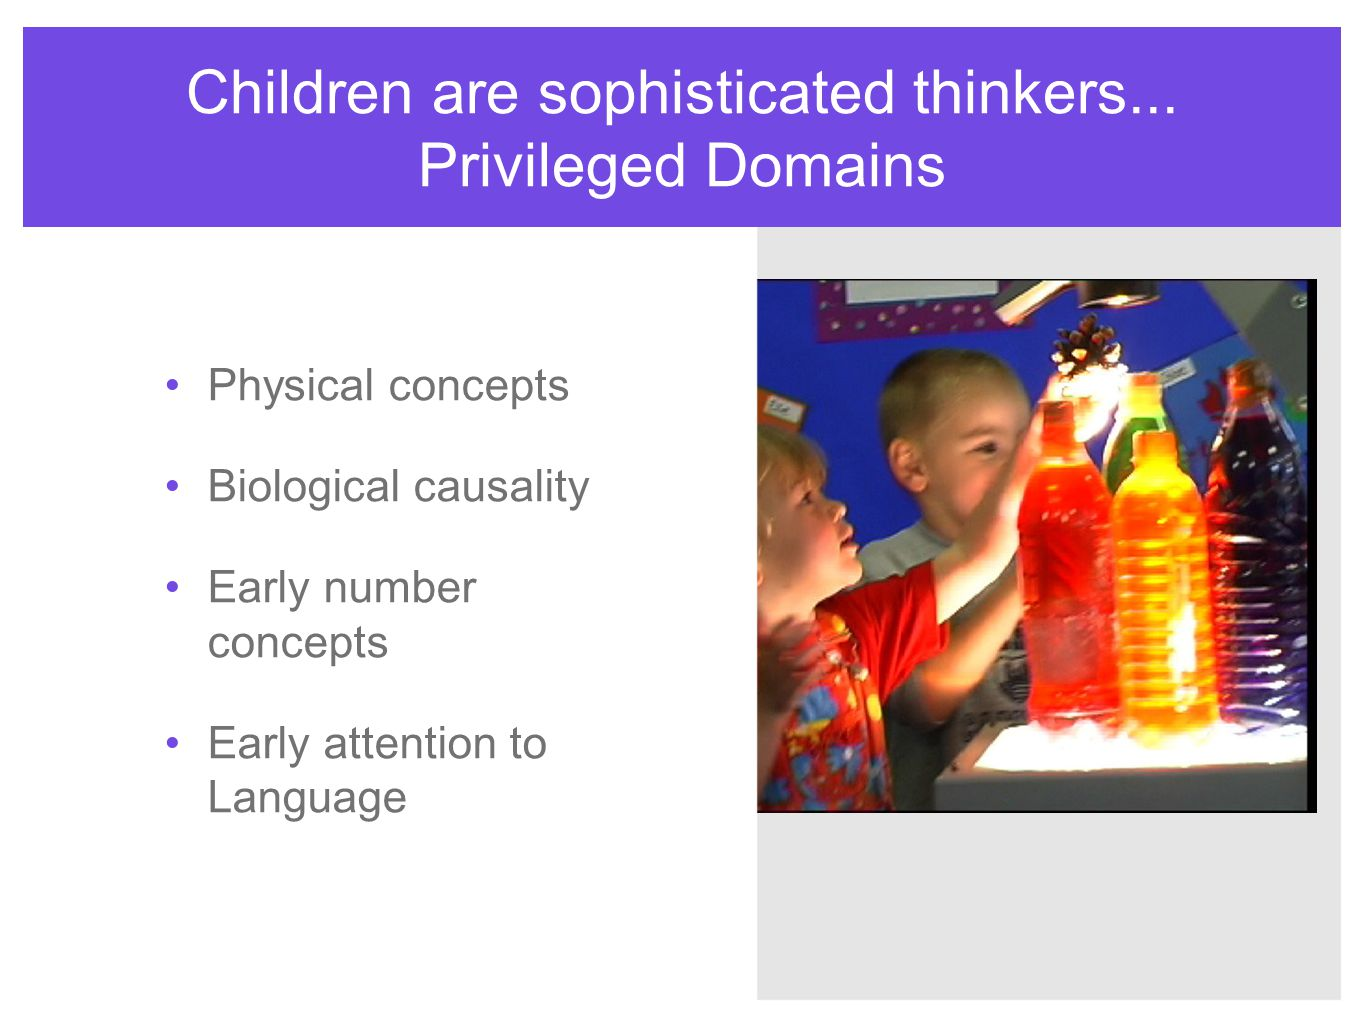 Children are sophisticated thinkers... Privileged Domains